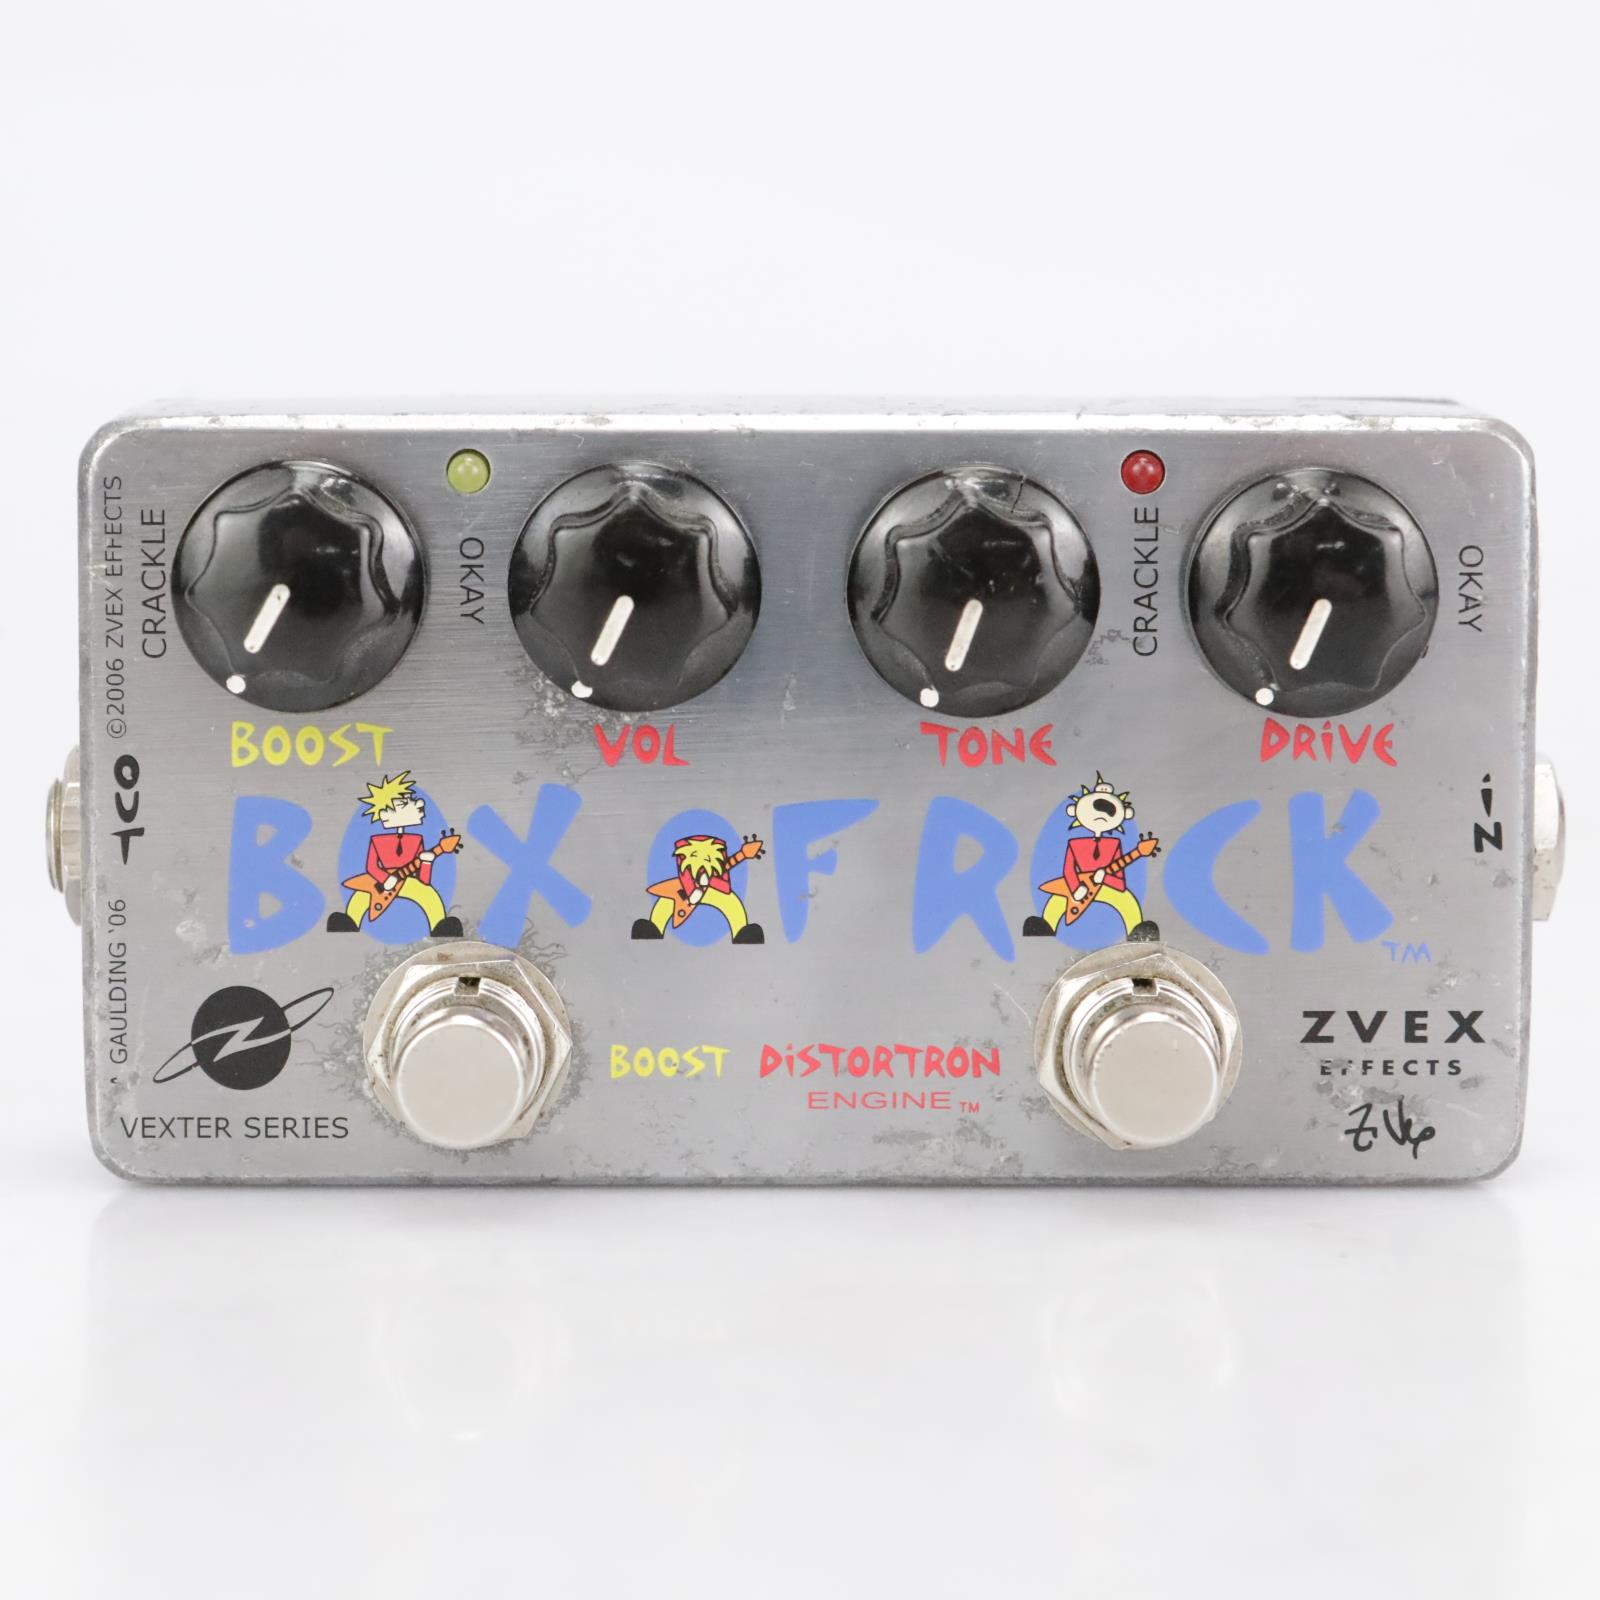 Zvex Effects Box of Rock Vexter Series Boost Distortion Engine Pedal 2006 #41889